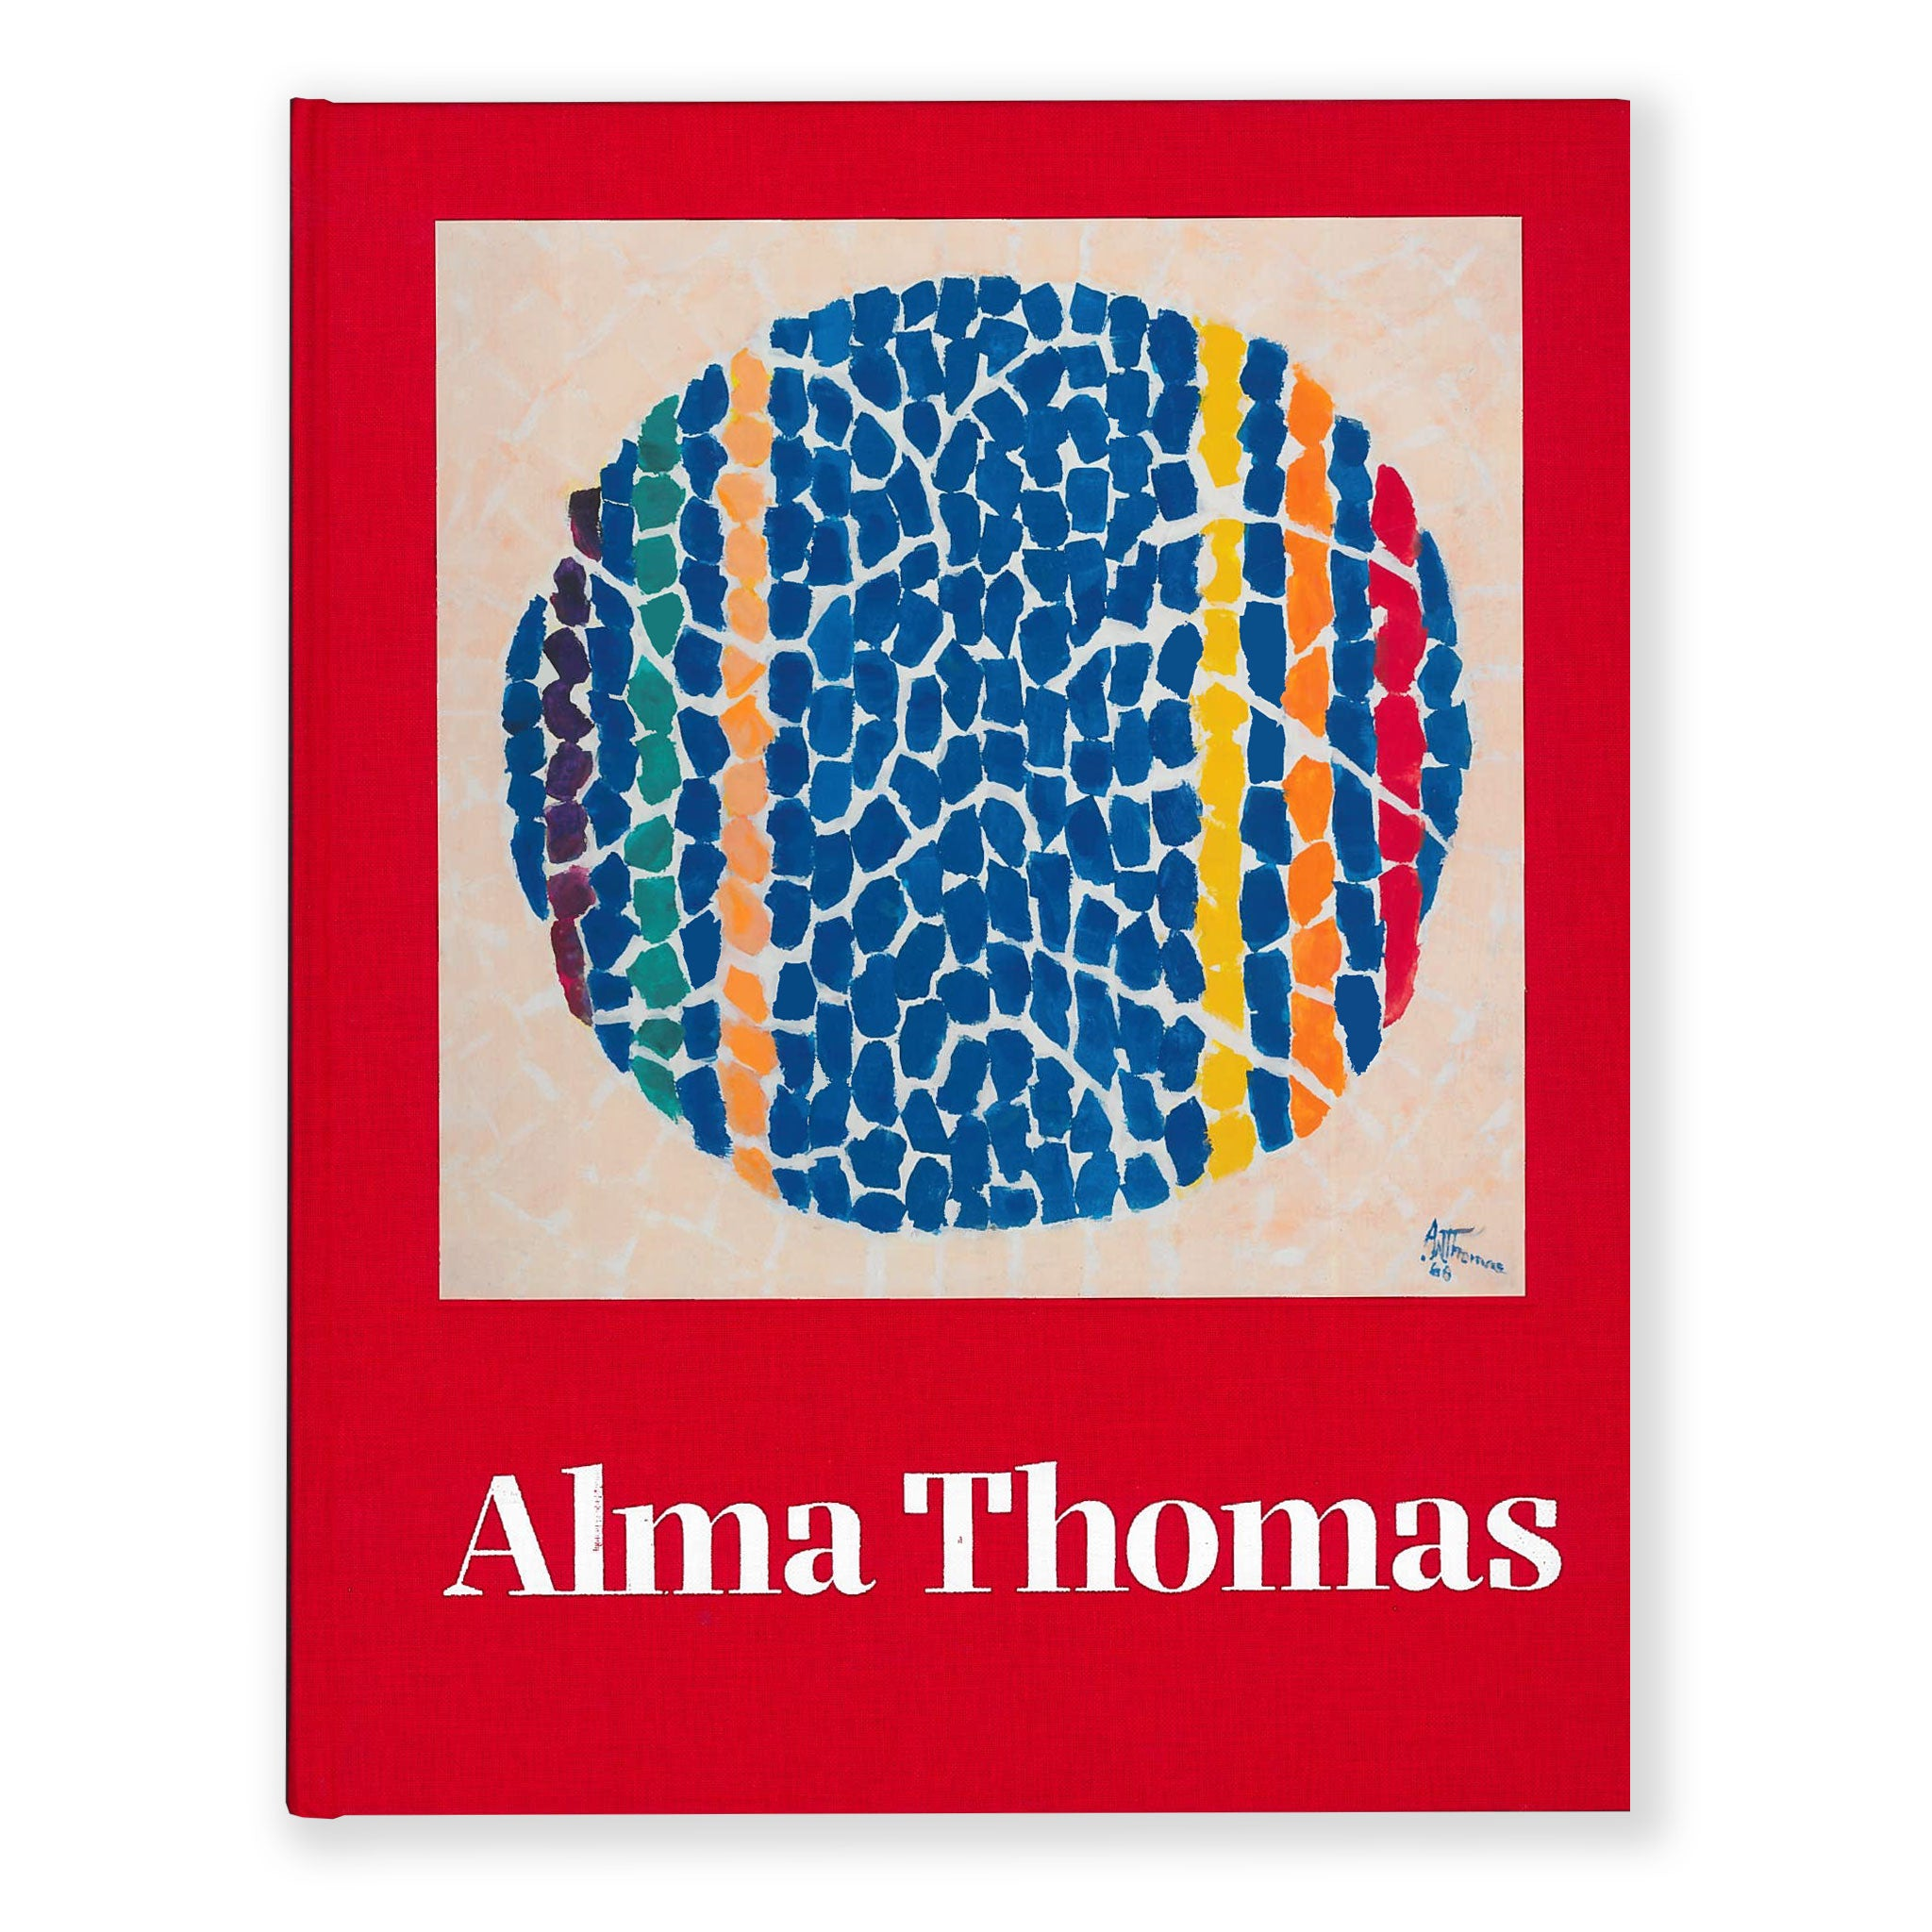 Alma Thomas Color Field abstract geometric book monograph scma Smith College Museum of Art